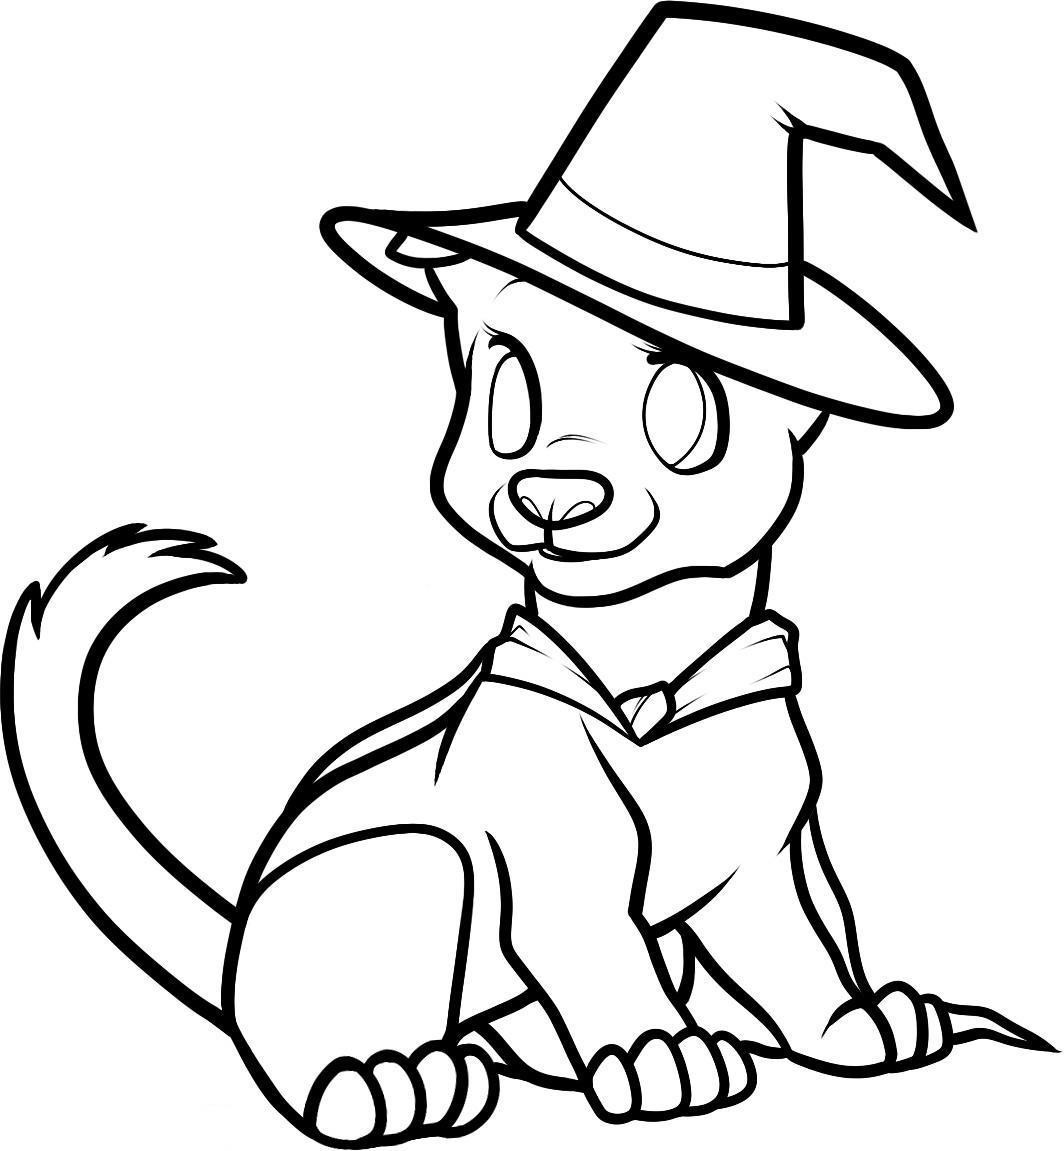 Best ideas about Cute Halloween Coloring Sheets For Kids . Save or Pin Cute Halloween Coloring Pages To Print Coloring Home Now.